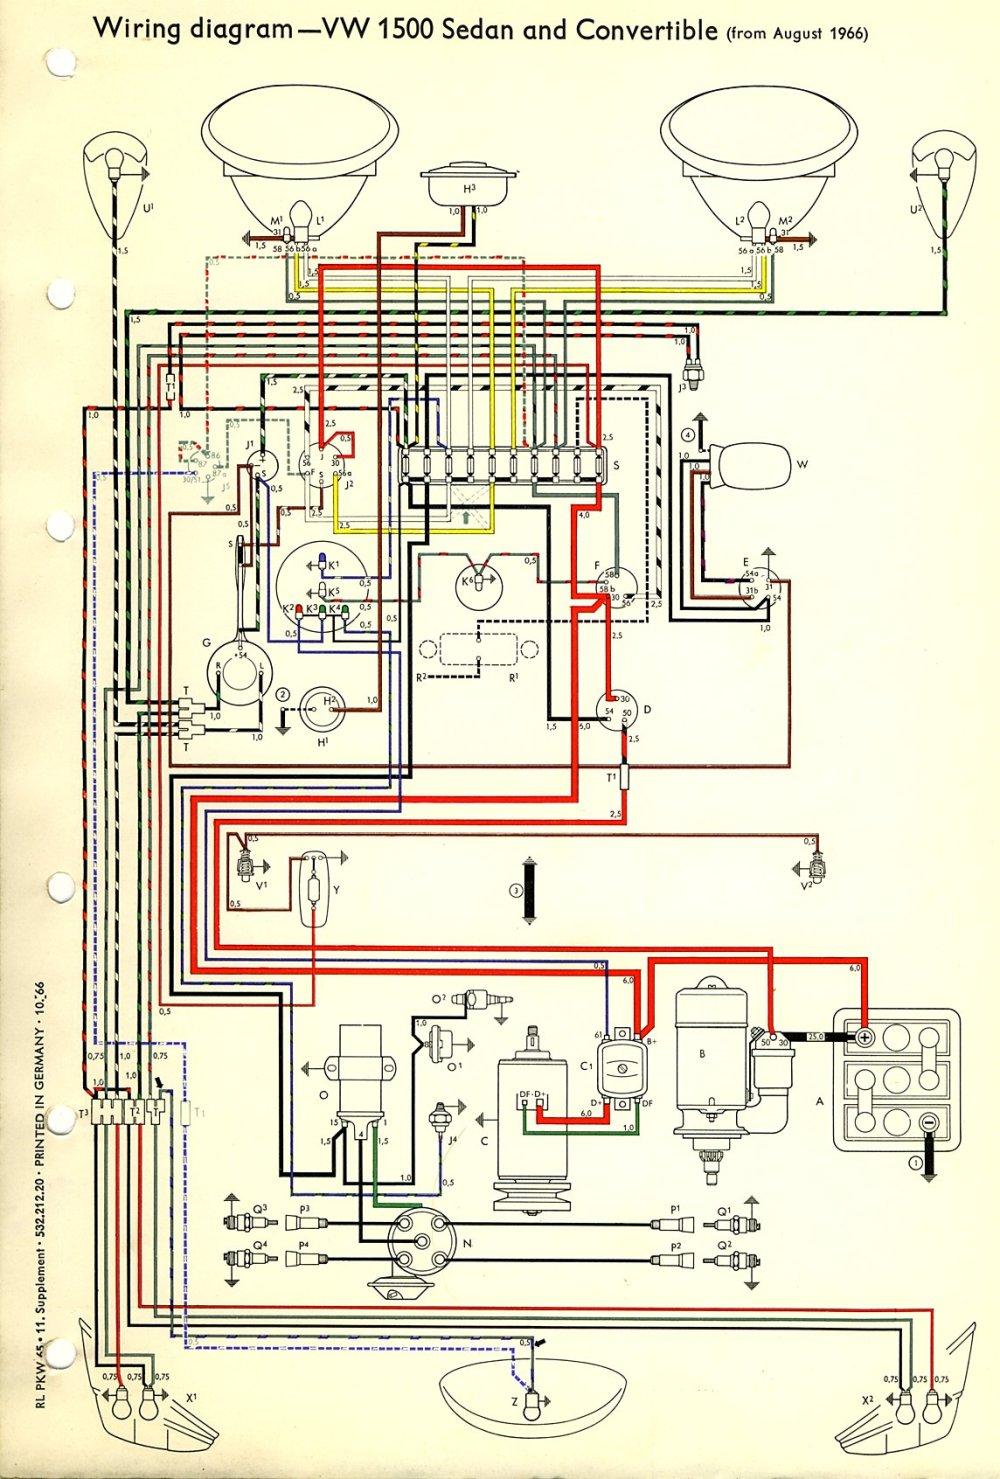 medium resolution of 1974 vw beetle wiring diagram completed wiring diagrams rh 35 schwarzgoldtrio de 1600cc vw engine diagram